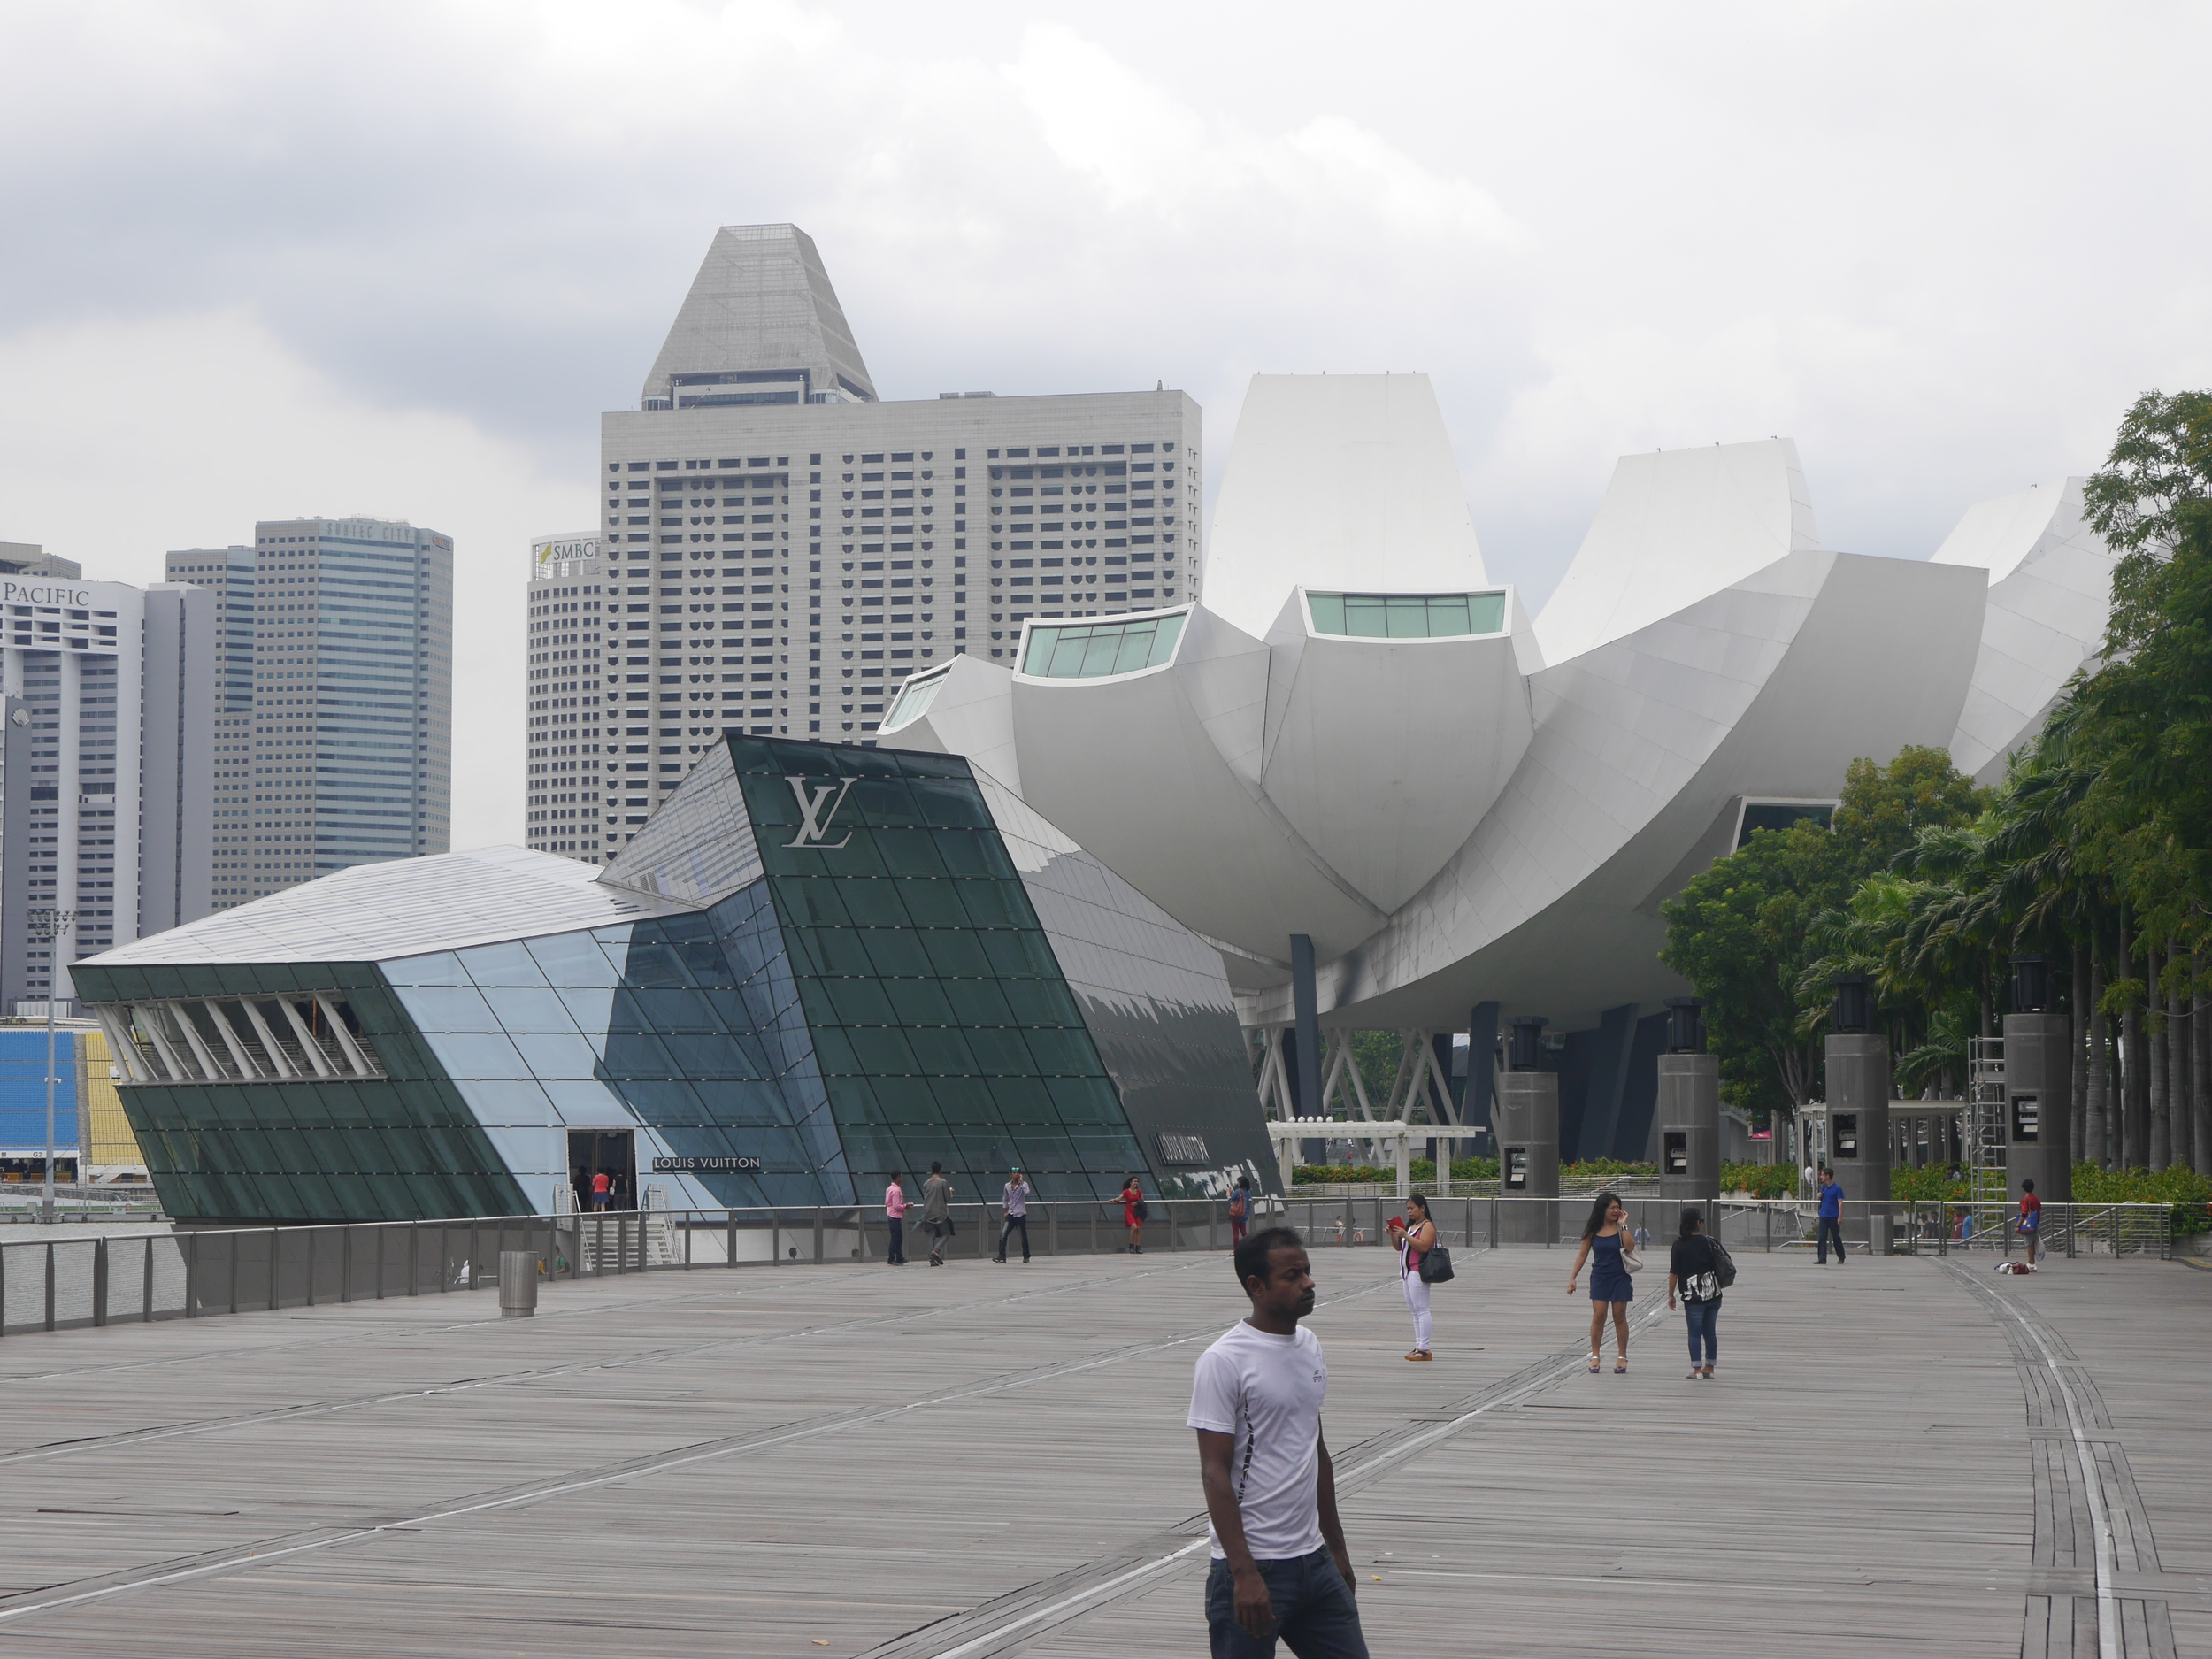 The Singapore ArtScience museum on the right, and a Louis Vuitton store (building?) on the left.